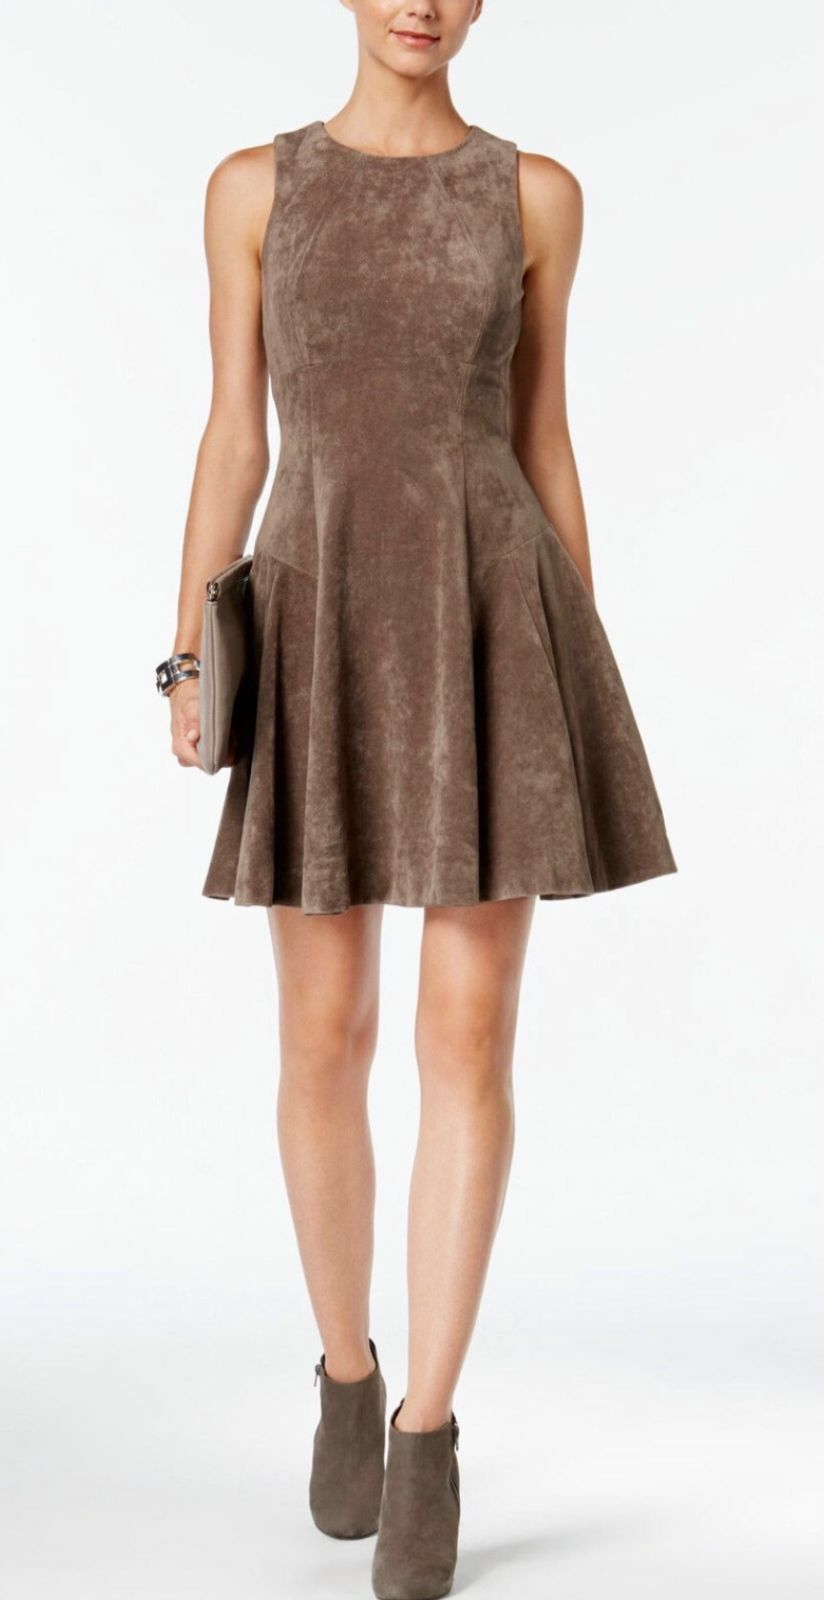 IVANKA TRUMP Women's Faux Suede Fit and Flare Dress NWT Heather Taupe Sz 8 Work